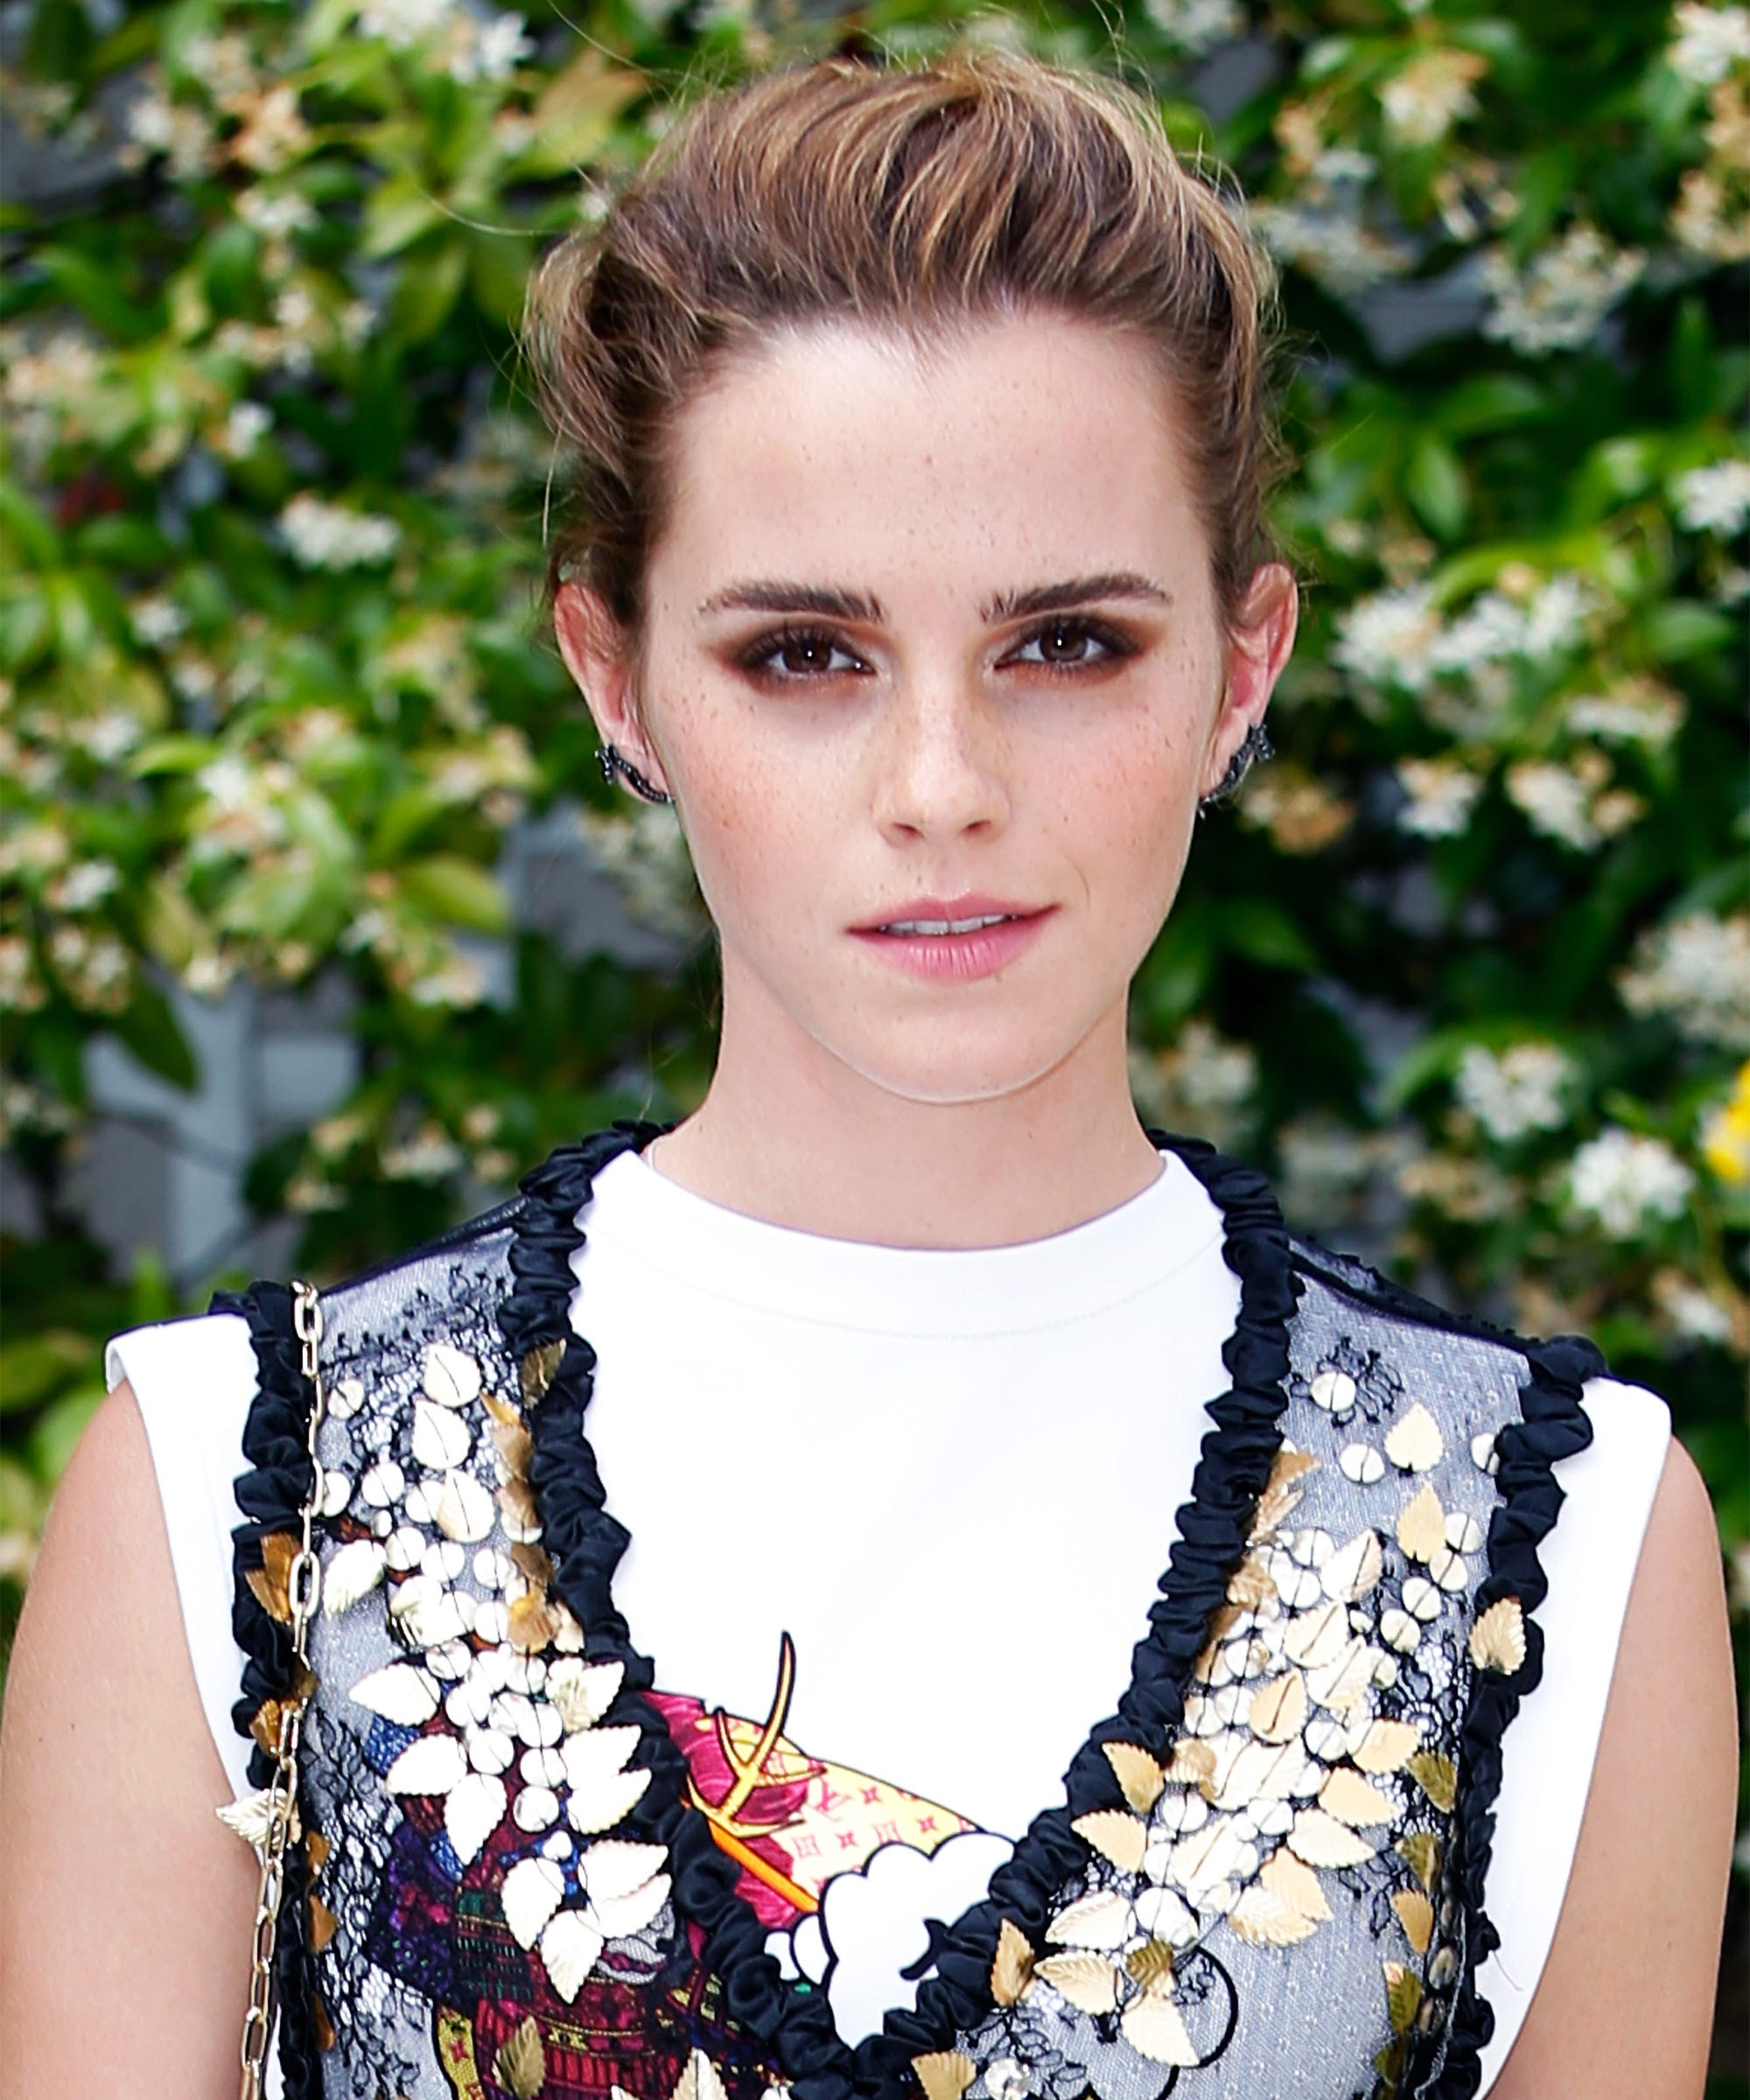 Emma Watson Hair Short Baby Bangs New Instagram